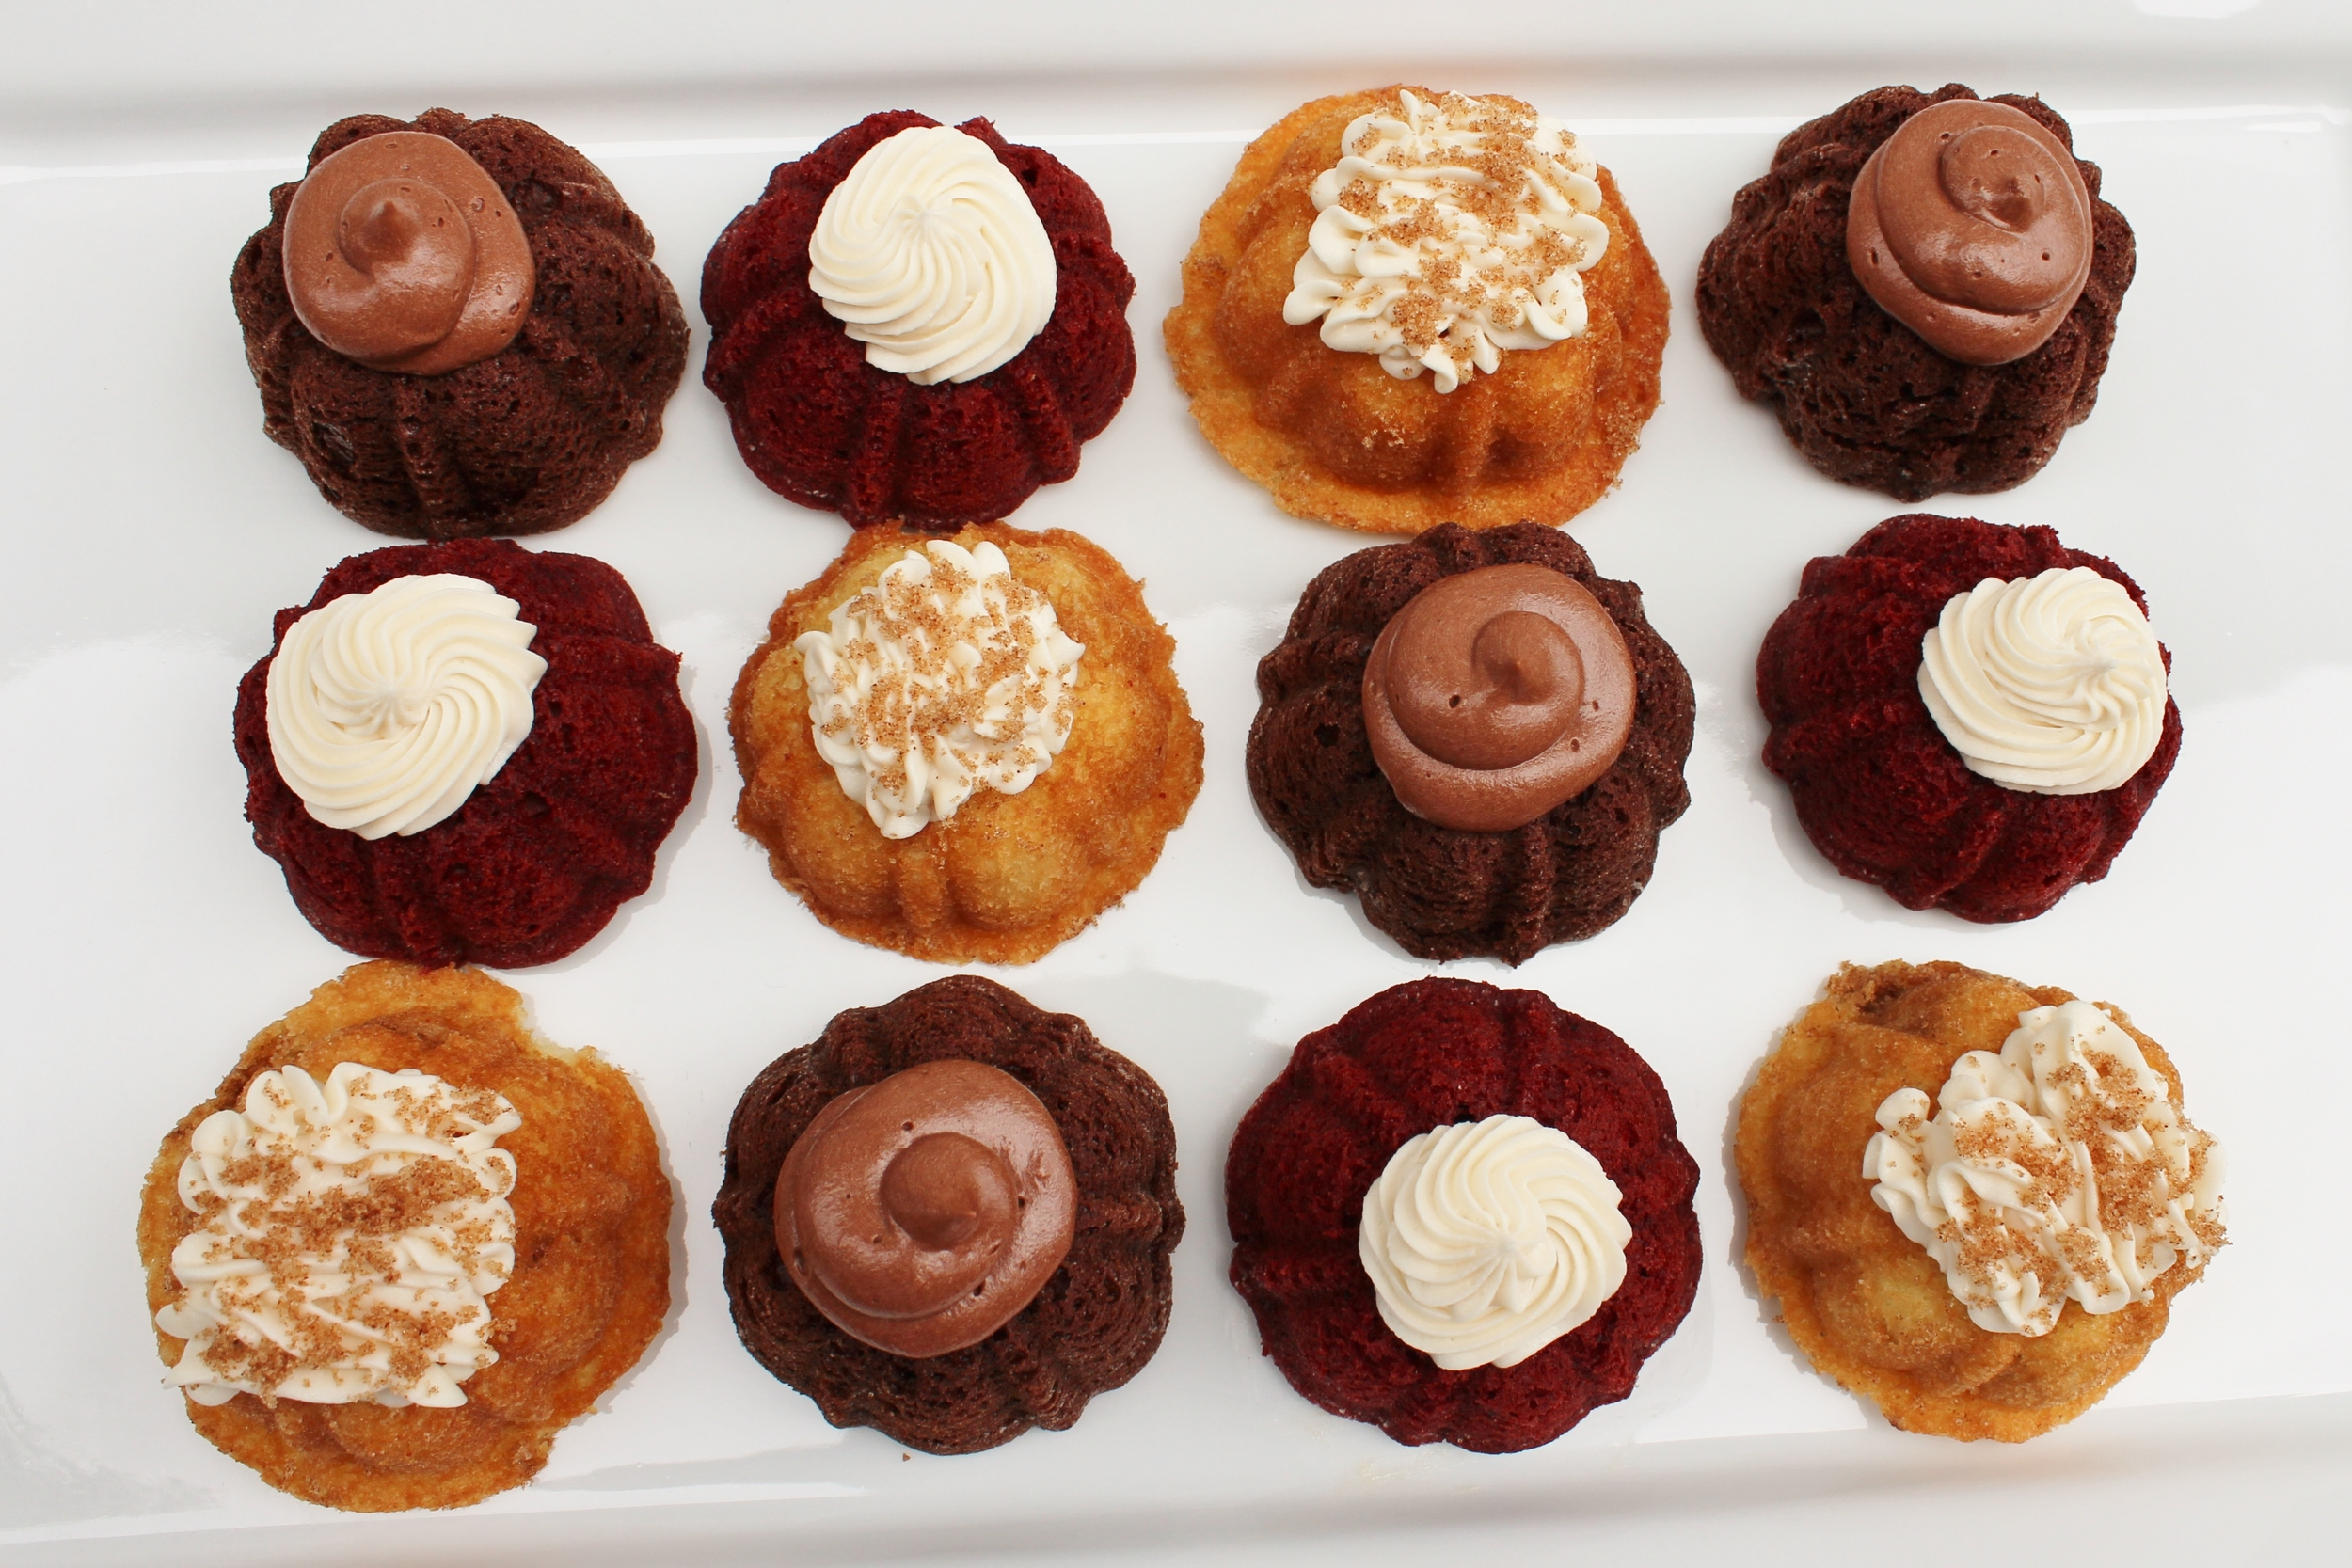 Our bundts are packaged with as much care as we bake them.  Your customers will be thrilled!